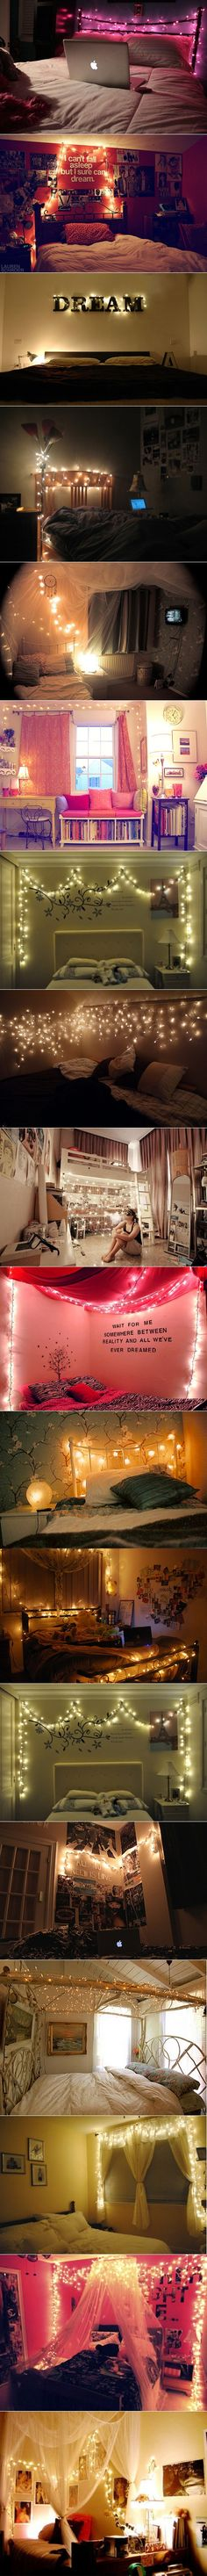 String light decorations! Awesome